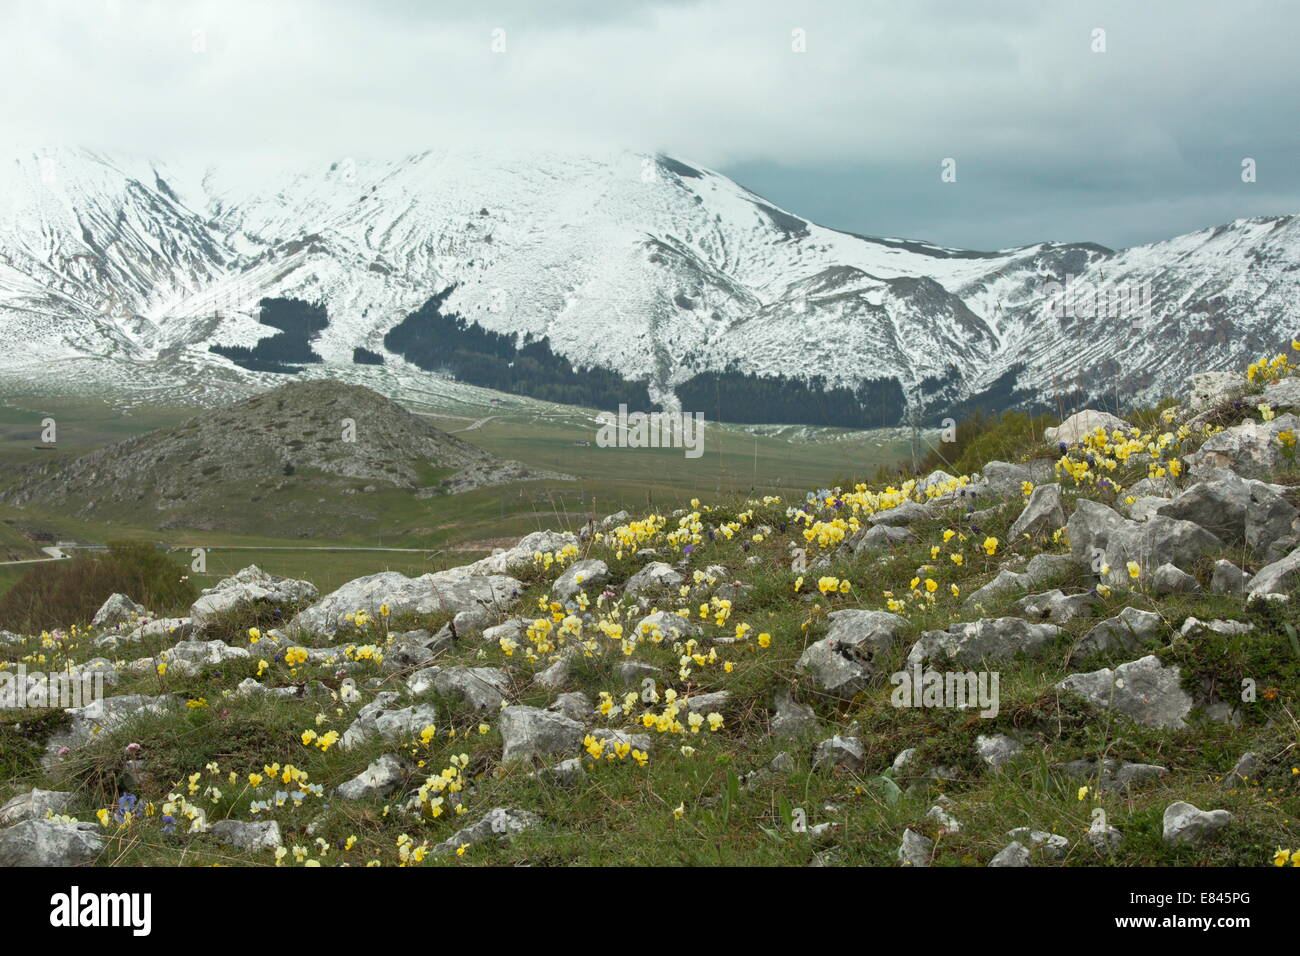 Masses of a yellow pansy, Viola eugeniae ssp. eugeniae, and other flowers on ridge by the Campo Imperatore, in Gran - Stock Image